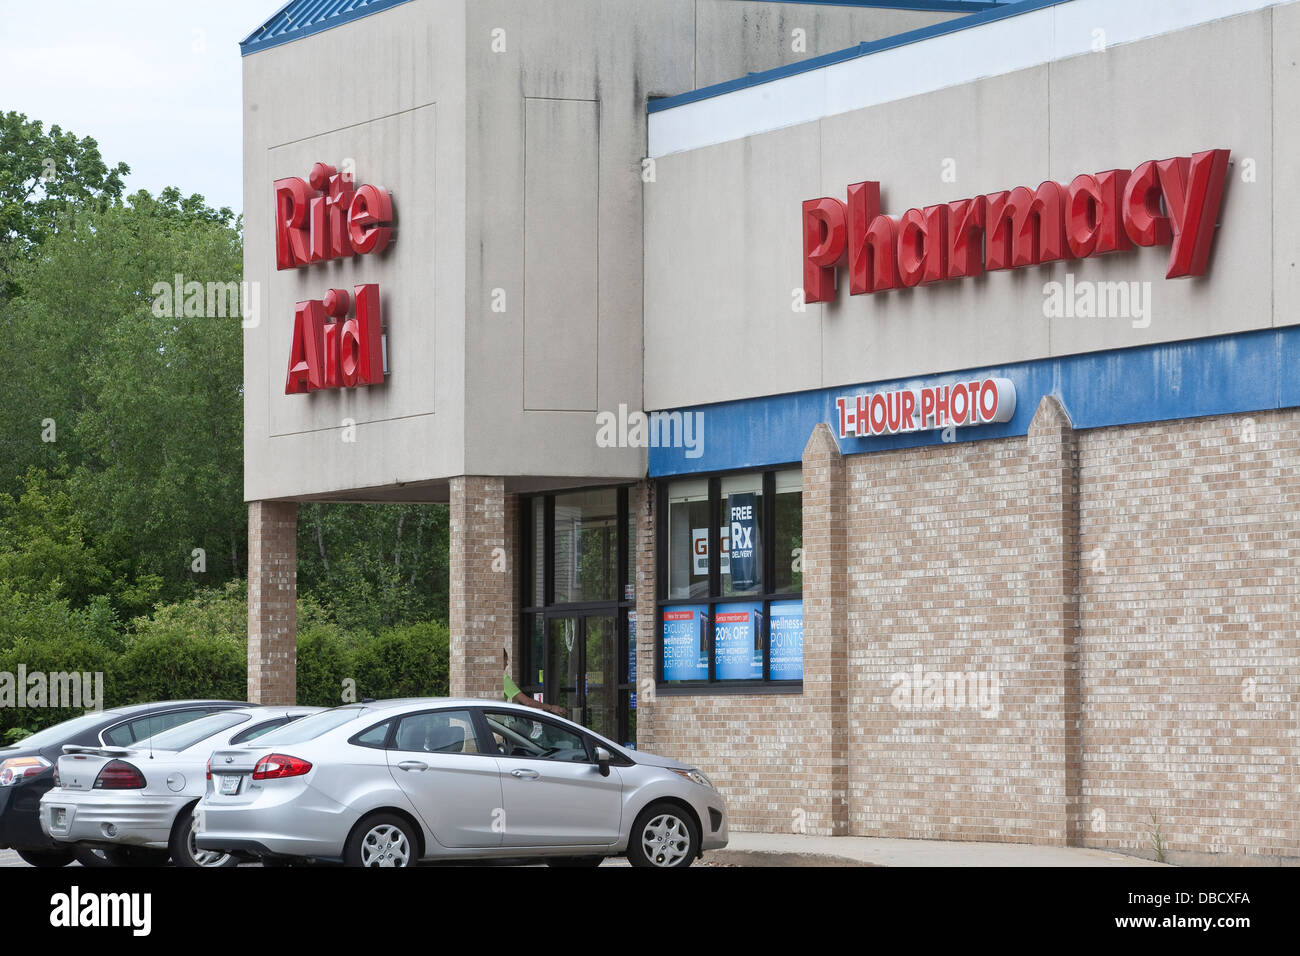 A Rite Aid pharmacy is pictured in Maine - Stock Image